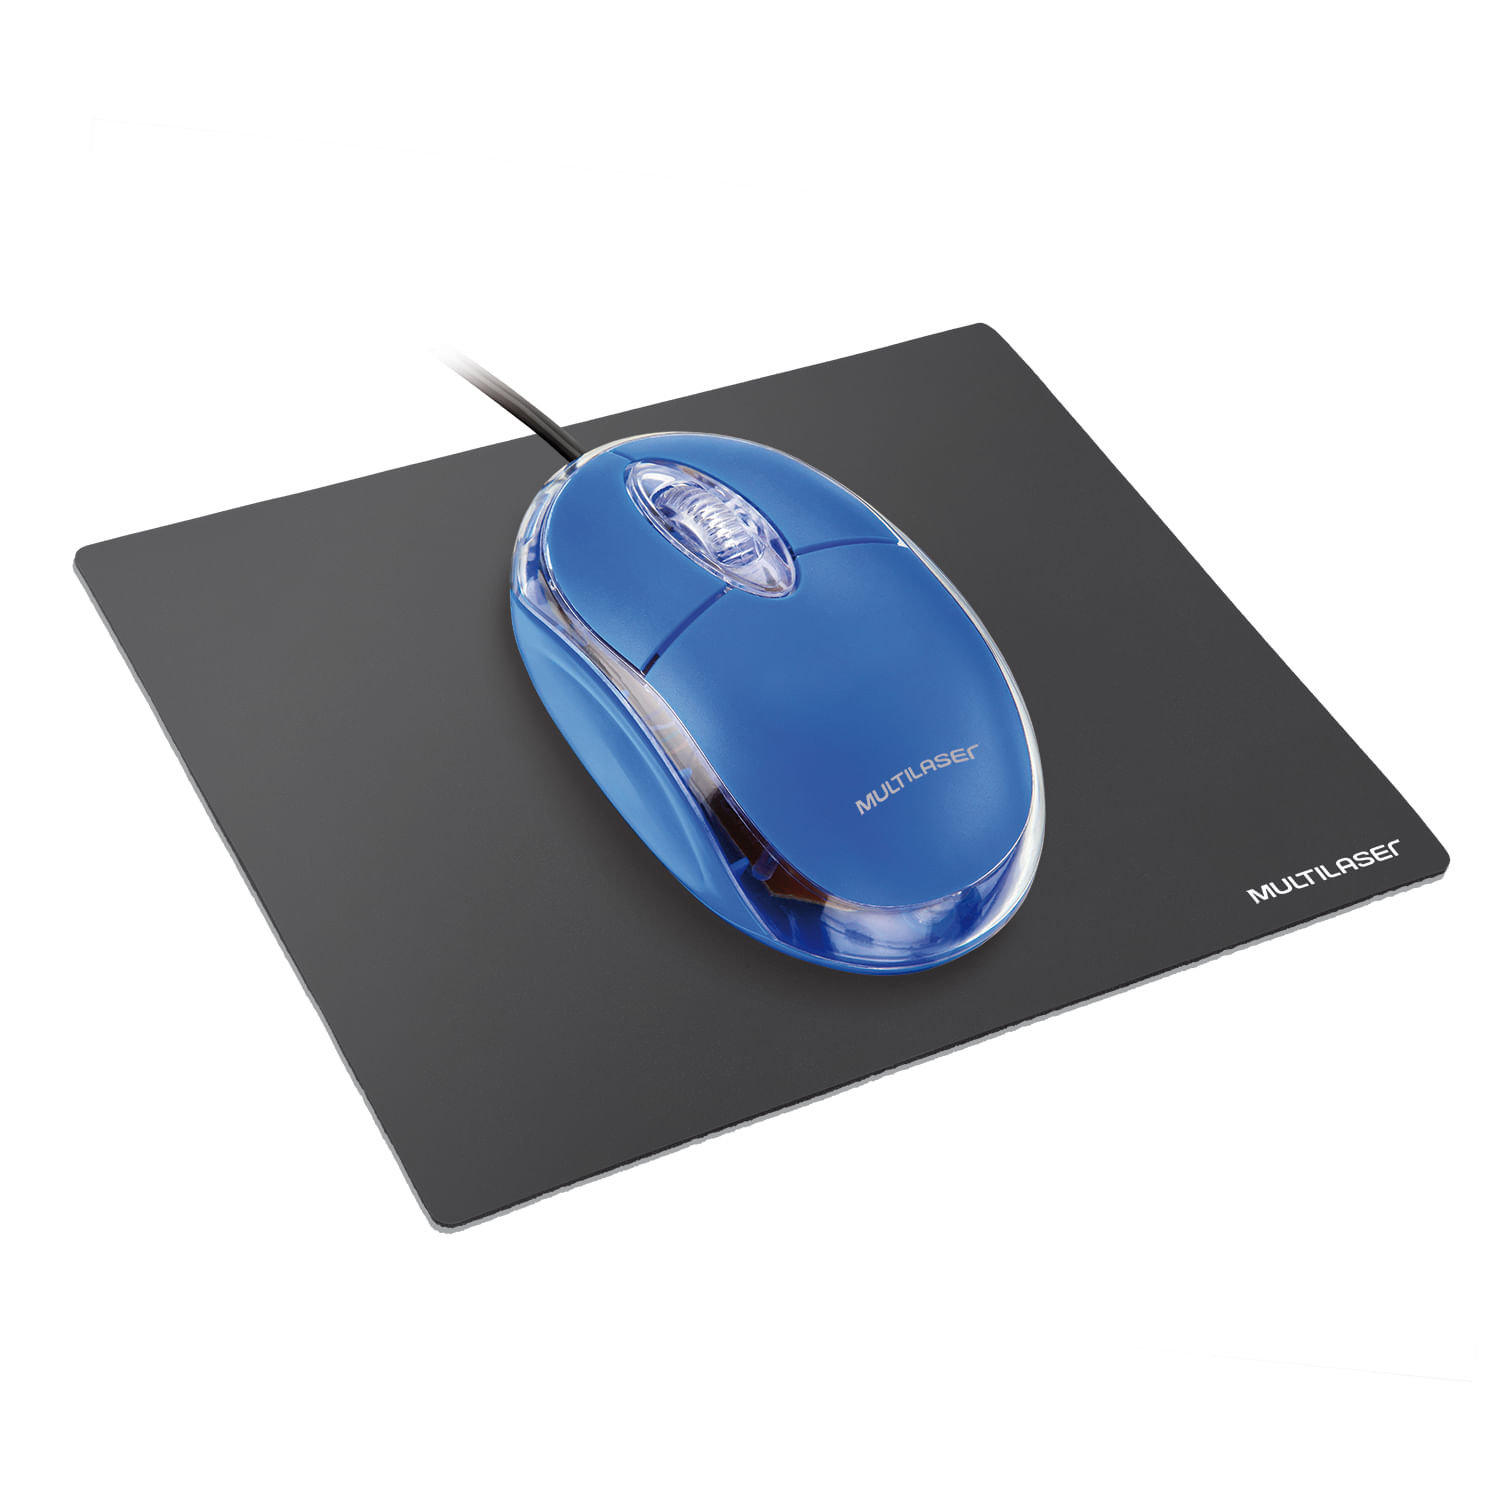 Mouse Pad Multilaser Standard 20 Unidades Preto - AC027